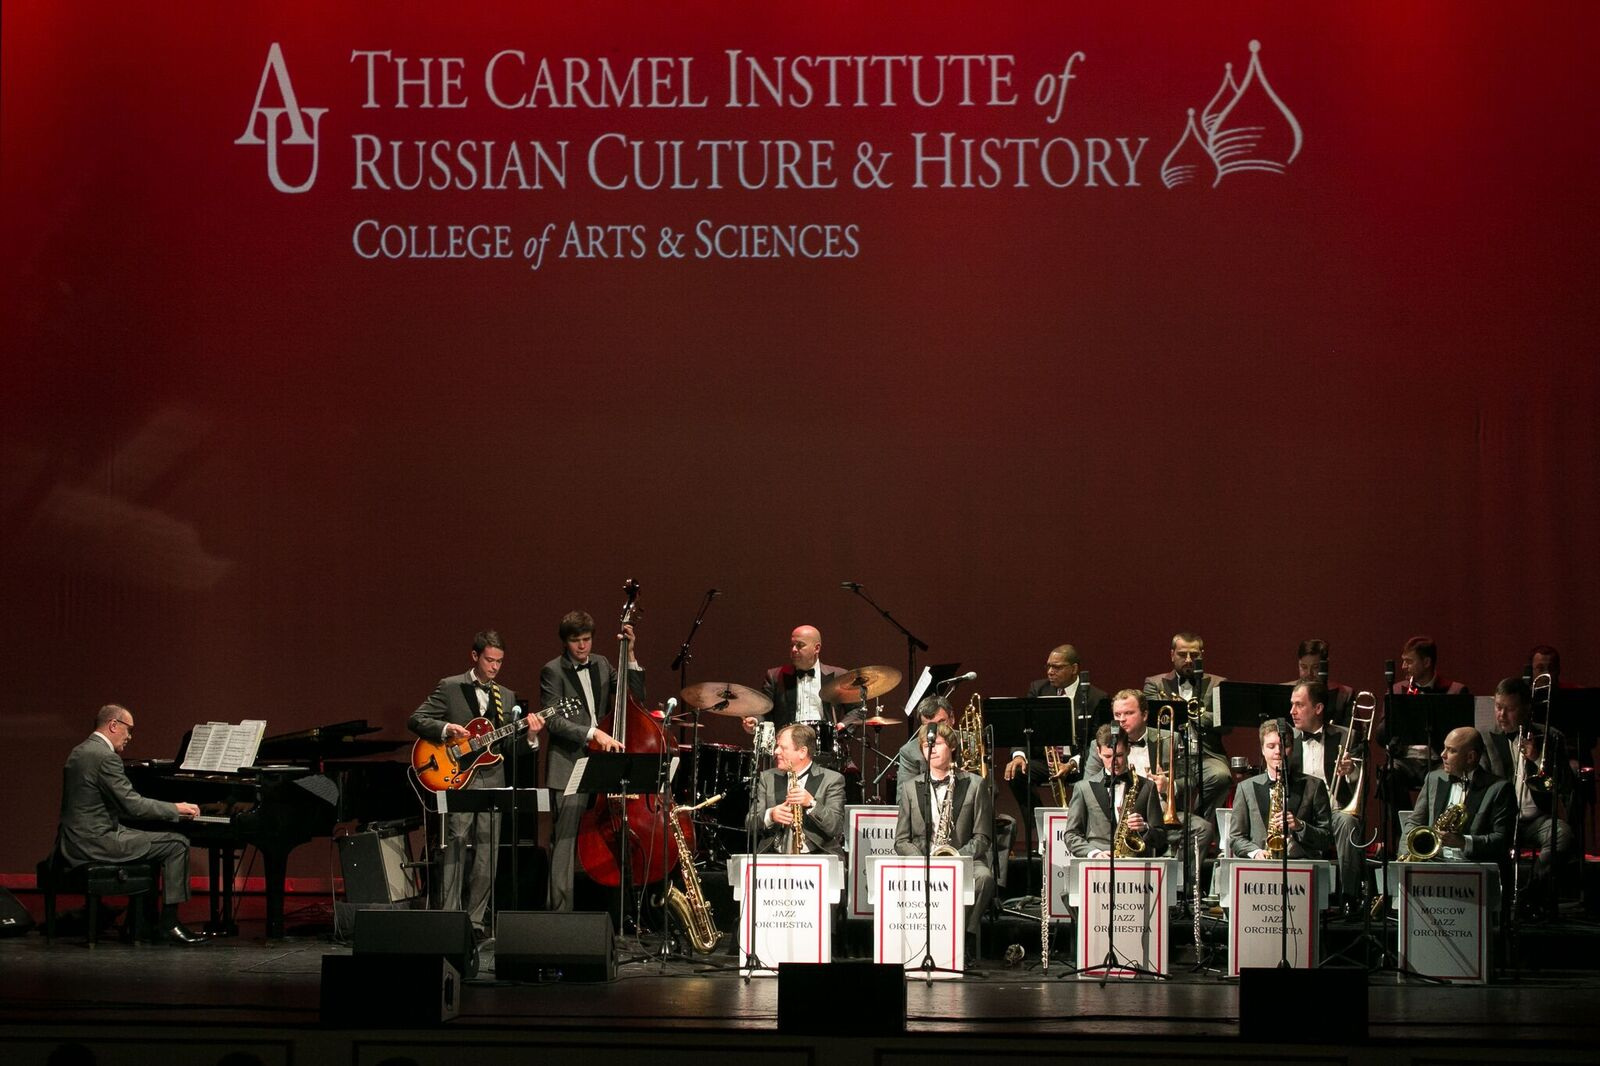 The Carmel Institute of Russian Culture and History celebrated its 5th Anniversary.